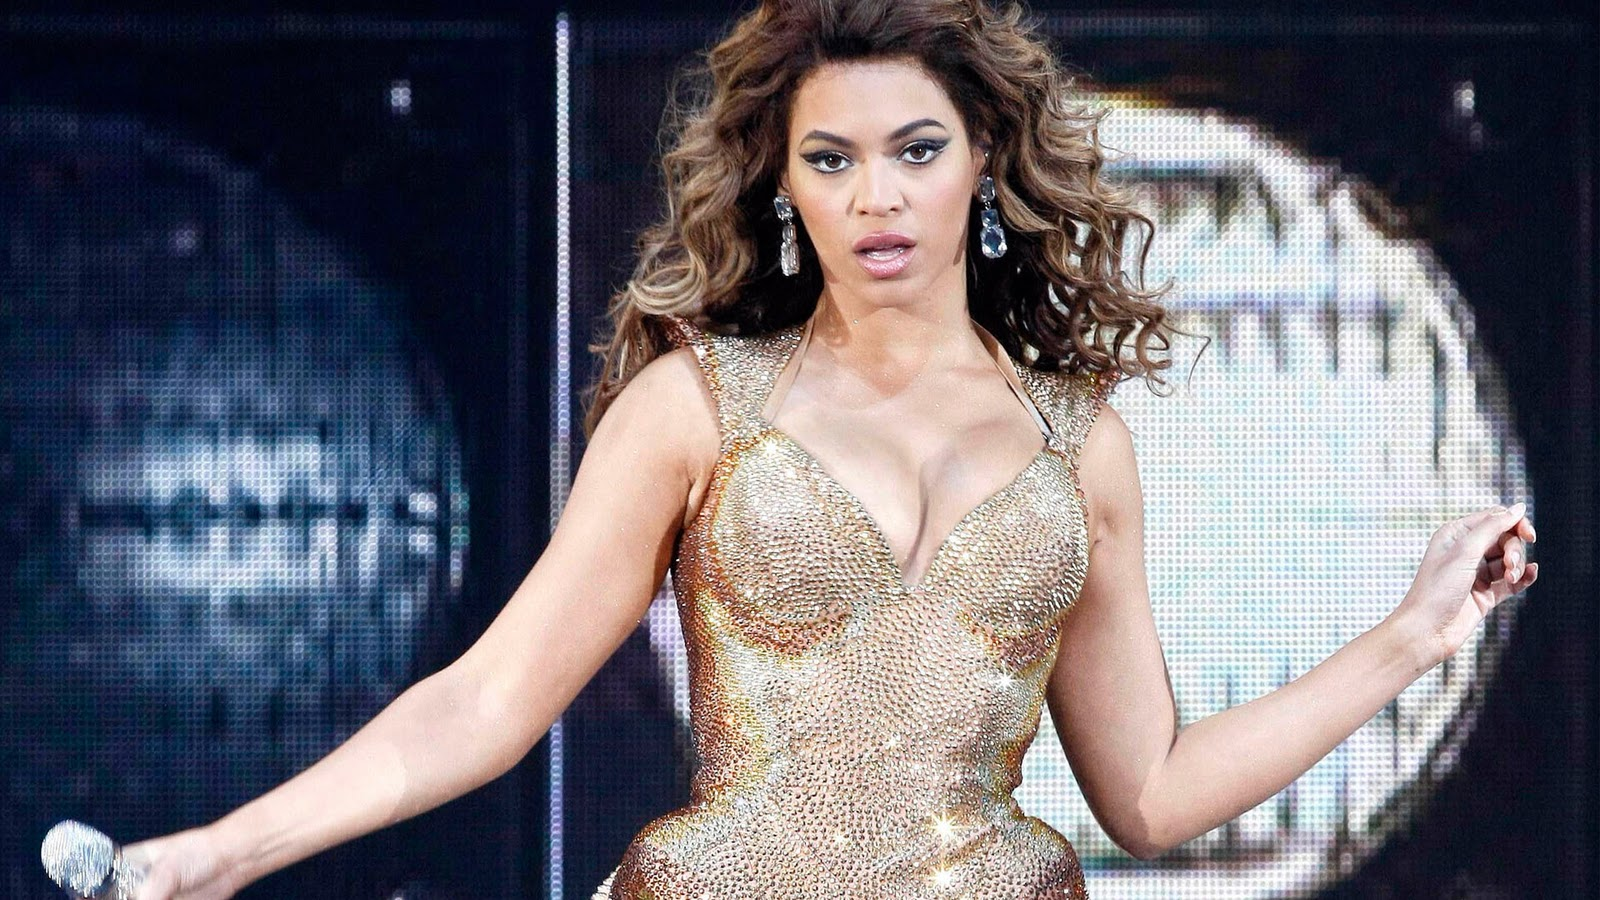 http://2.bp.blogspot.com/-w25eXM2kf9w/TnRMYJ-mAWI/AAAAAAAABNM/0Nd2g1jq_-0/s1600/Beyonce_Knowles_Actress_Free_Download_High_Resolution_HD_HQ_Desktop_Backgrounds_Face_Wallpapers_21035.jpg